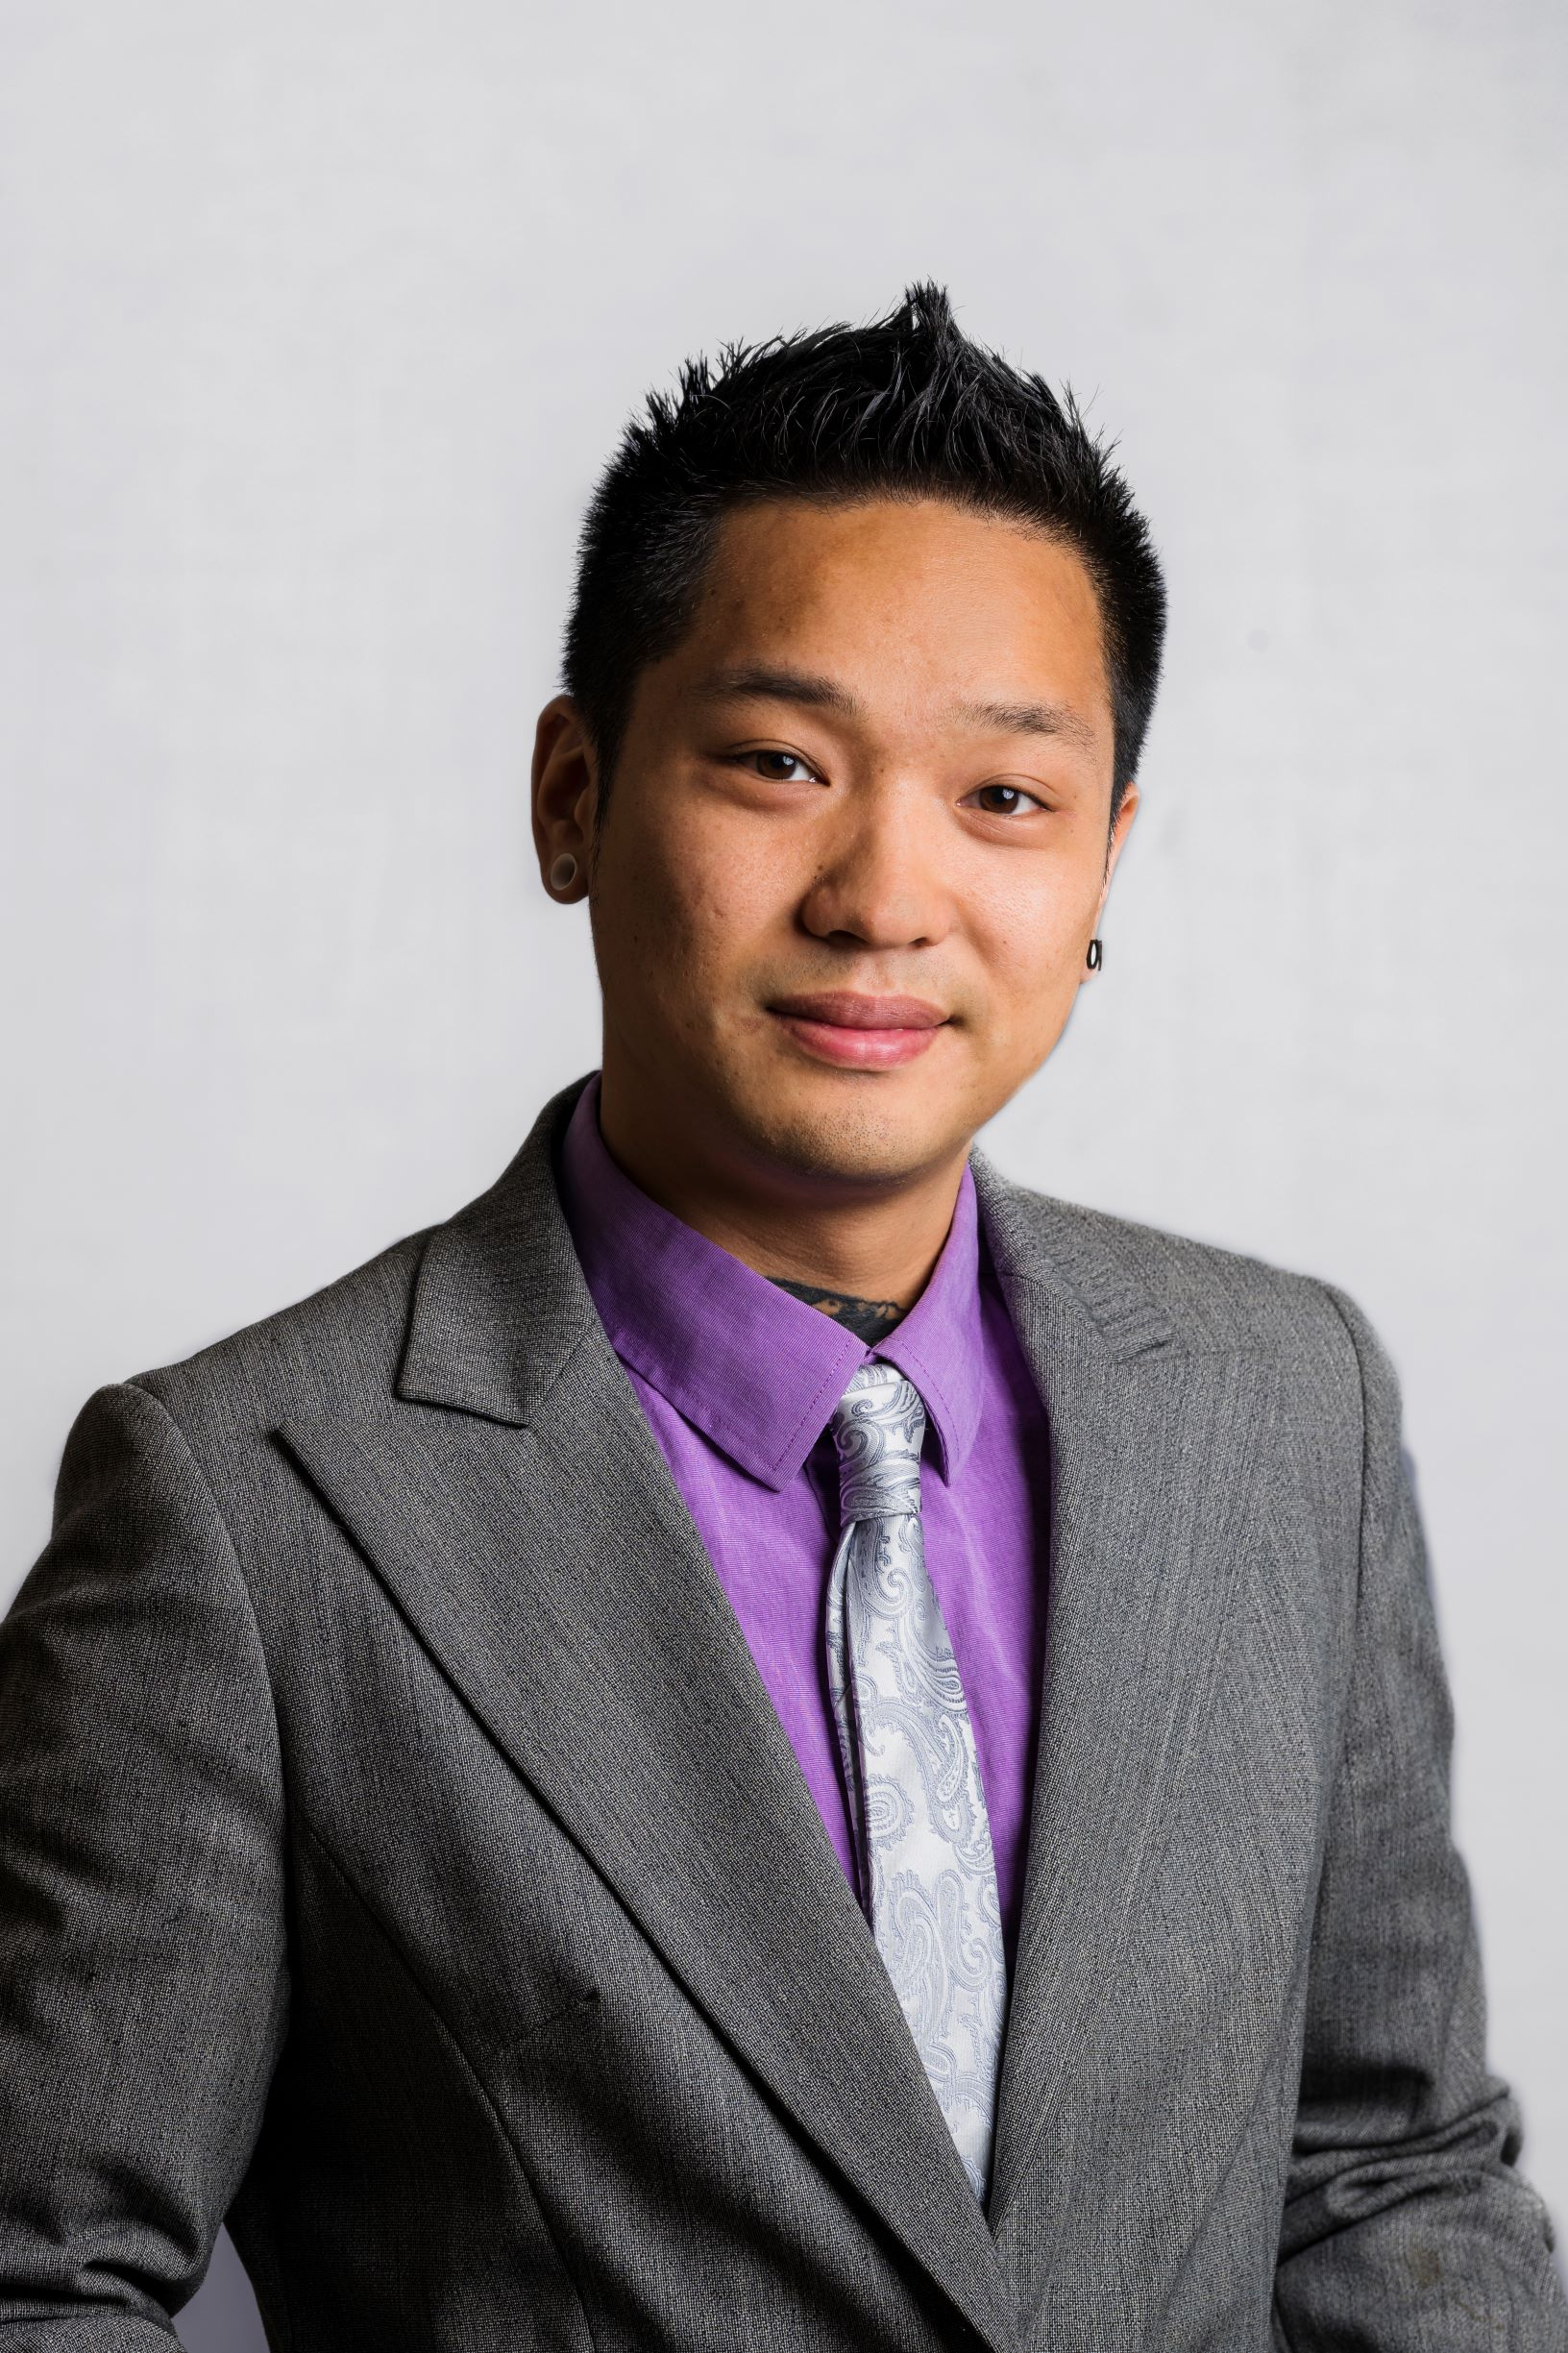 Jason Shem - ELECTRICAL ENGINEERJason joined HEI in 2019 and holds a Bachelor of Science in Electrical Engineering from the University of Houston.When not at HEI, I enjoy: playing basketball, skate/long boarding and backcountry camping.